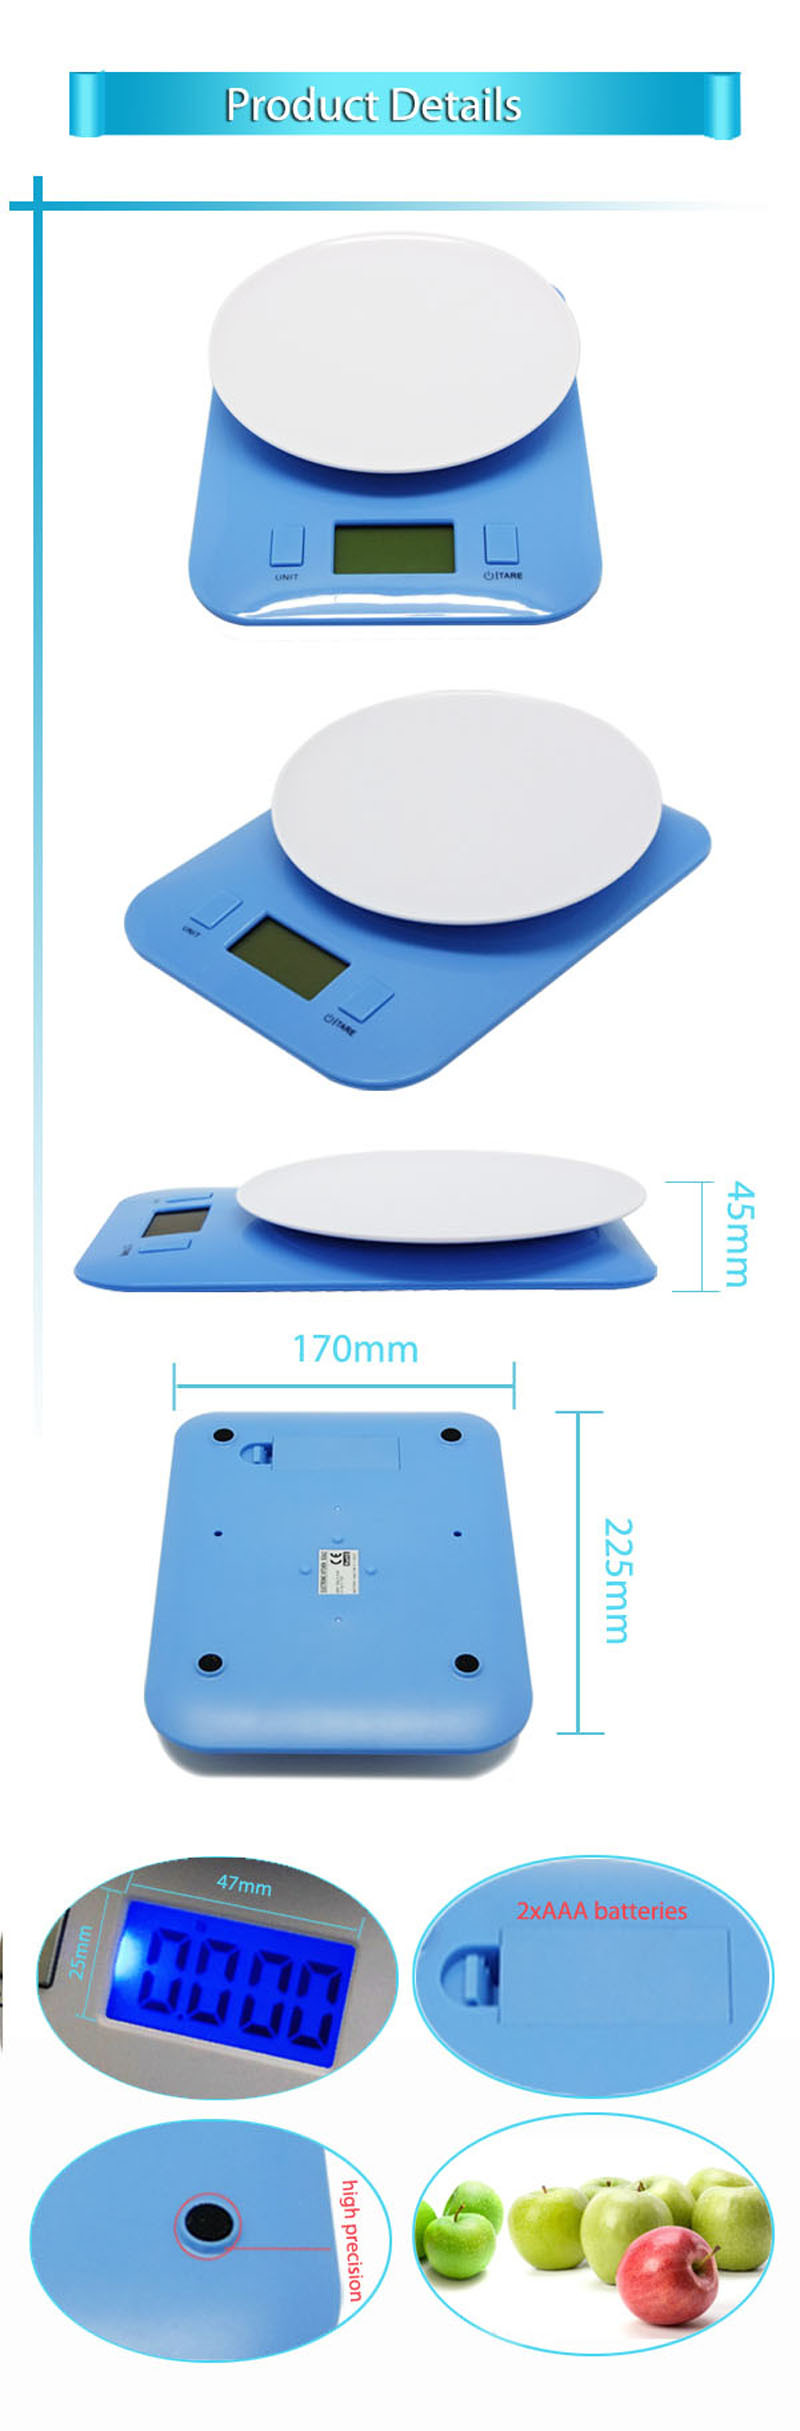 Sunny Hot Sale 3 kg Digital Food Scale